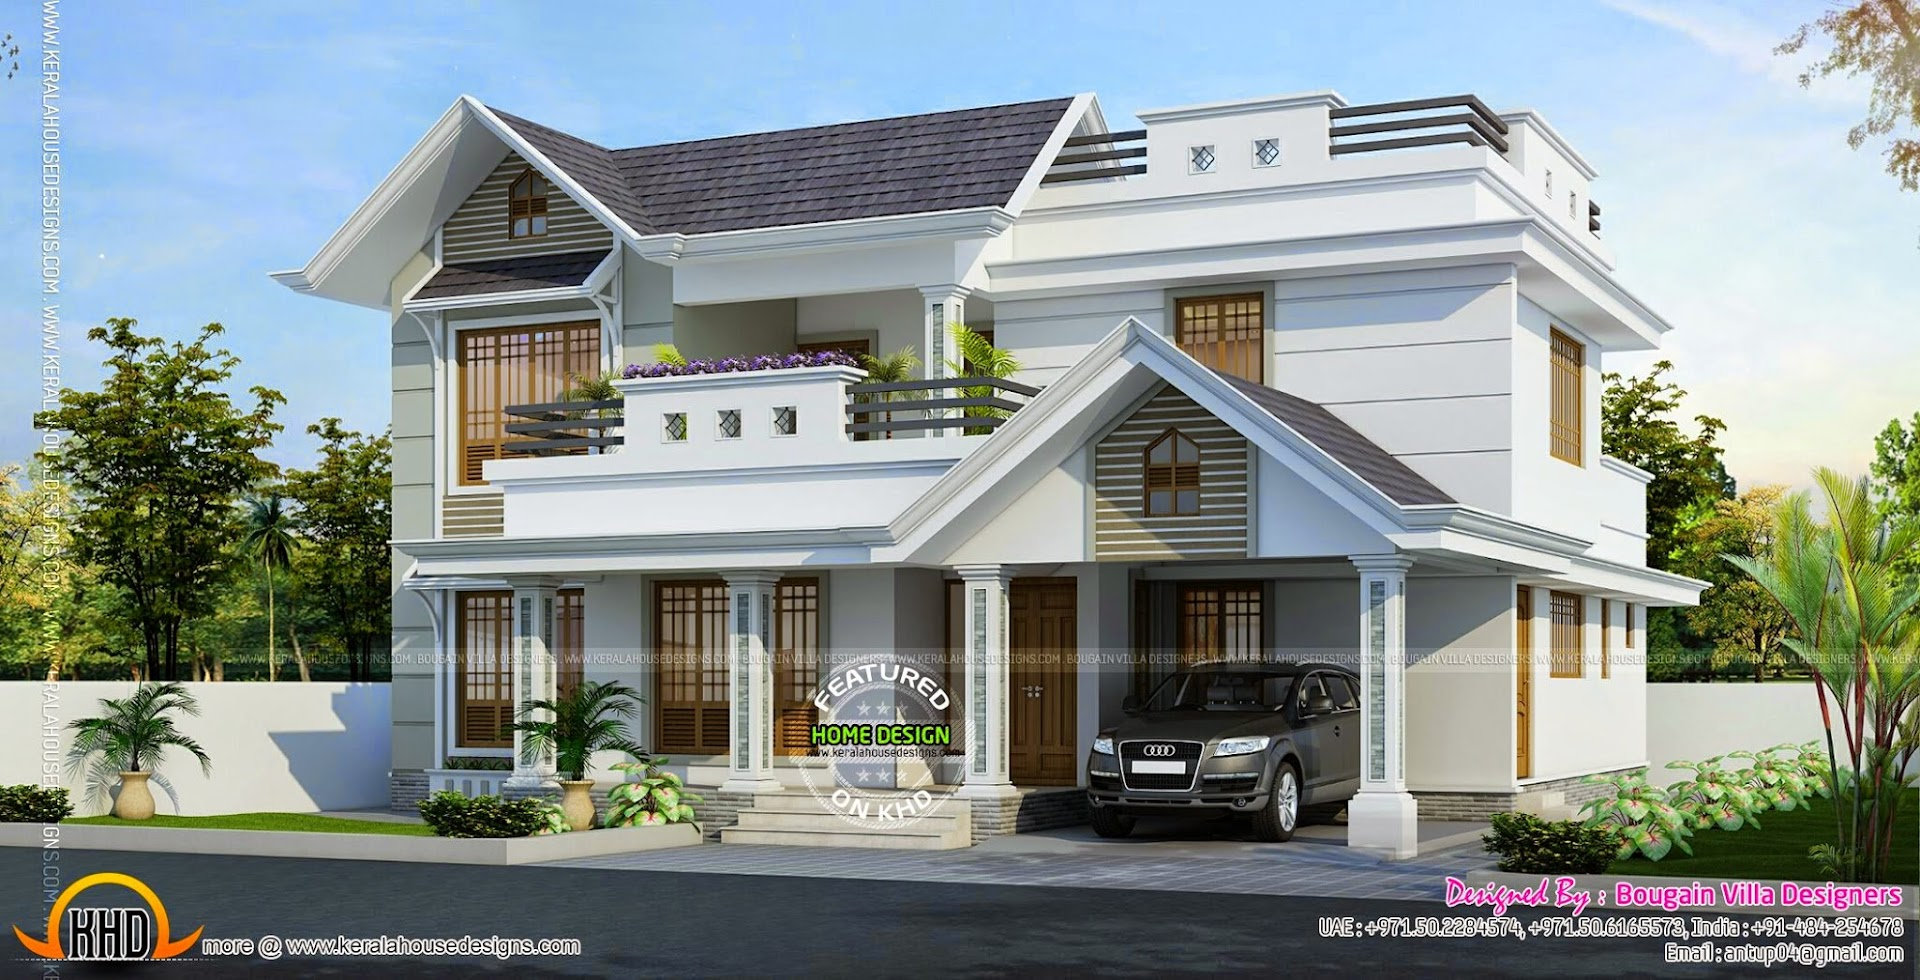 Classic style 4 bedroom house home design simple for Classic home design